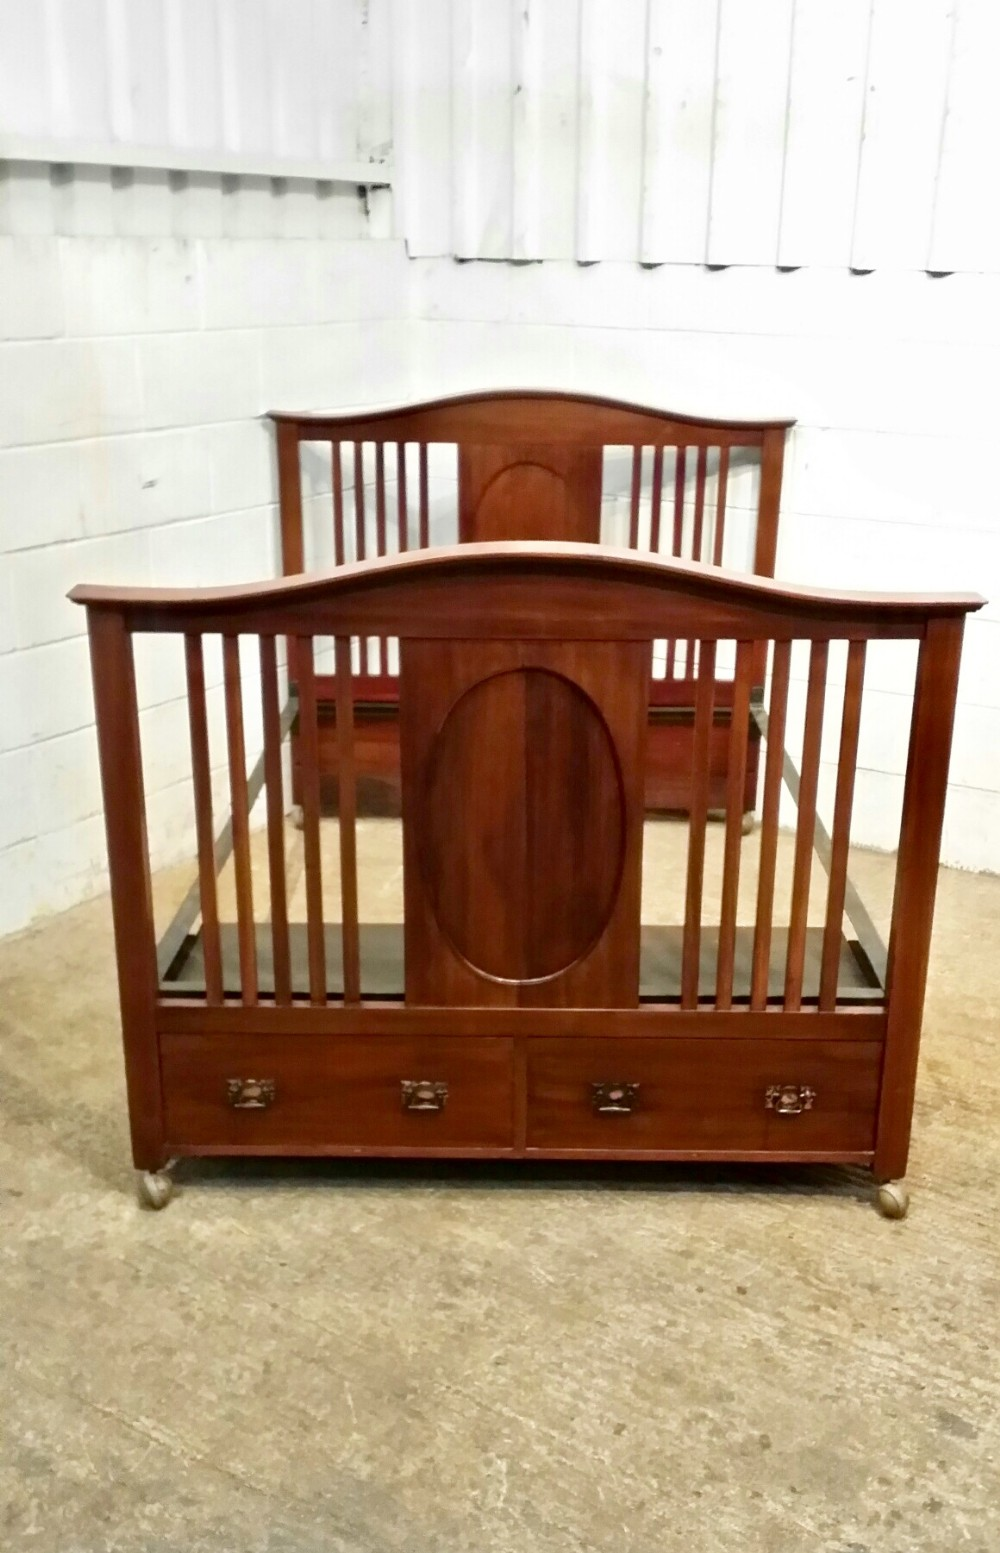 antique edwardian mahogany double bed with drawers c1900